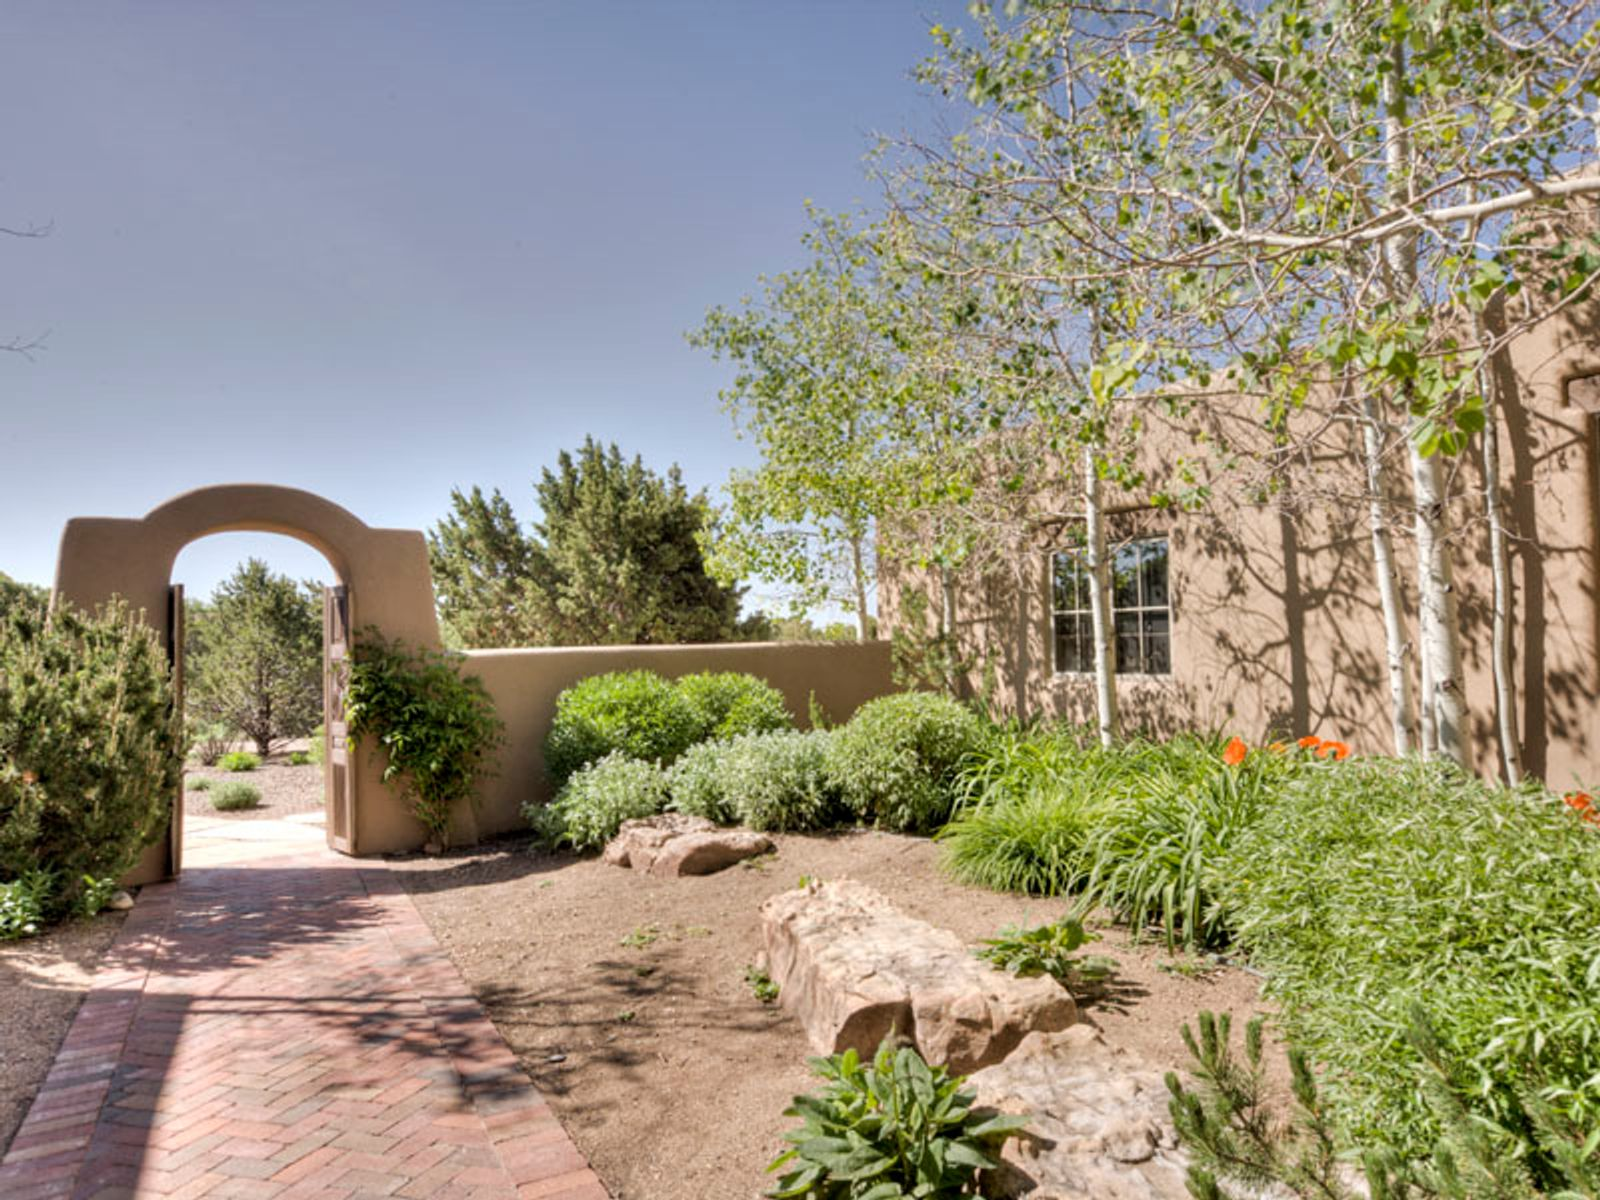 Encircled by a classic adobe wall and wood gate